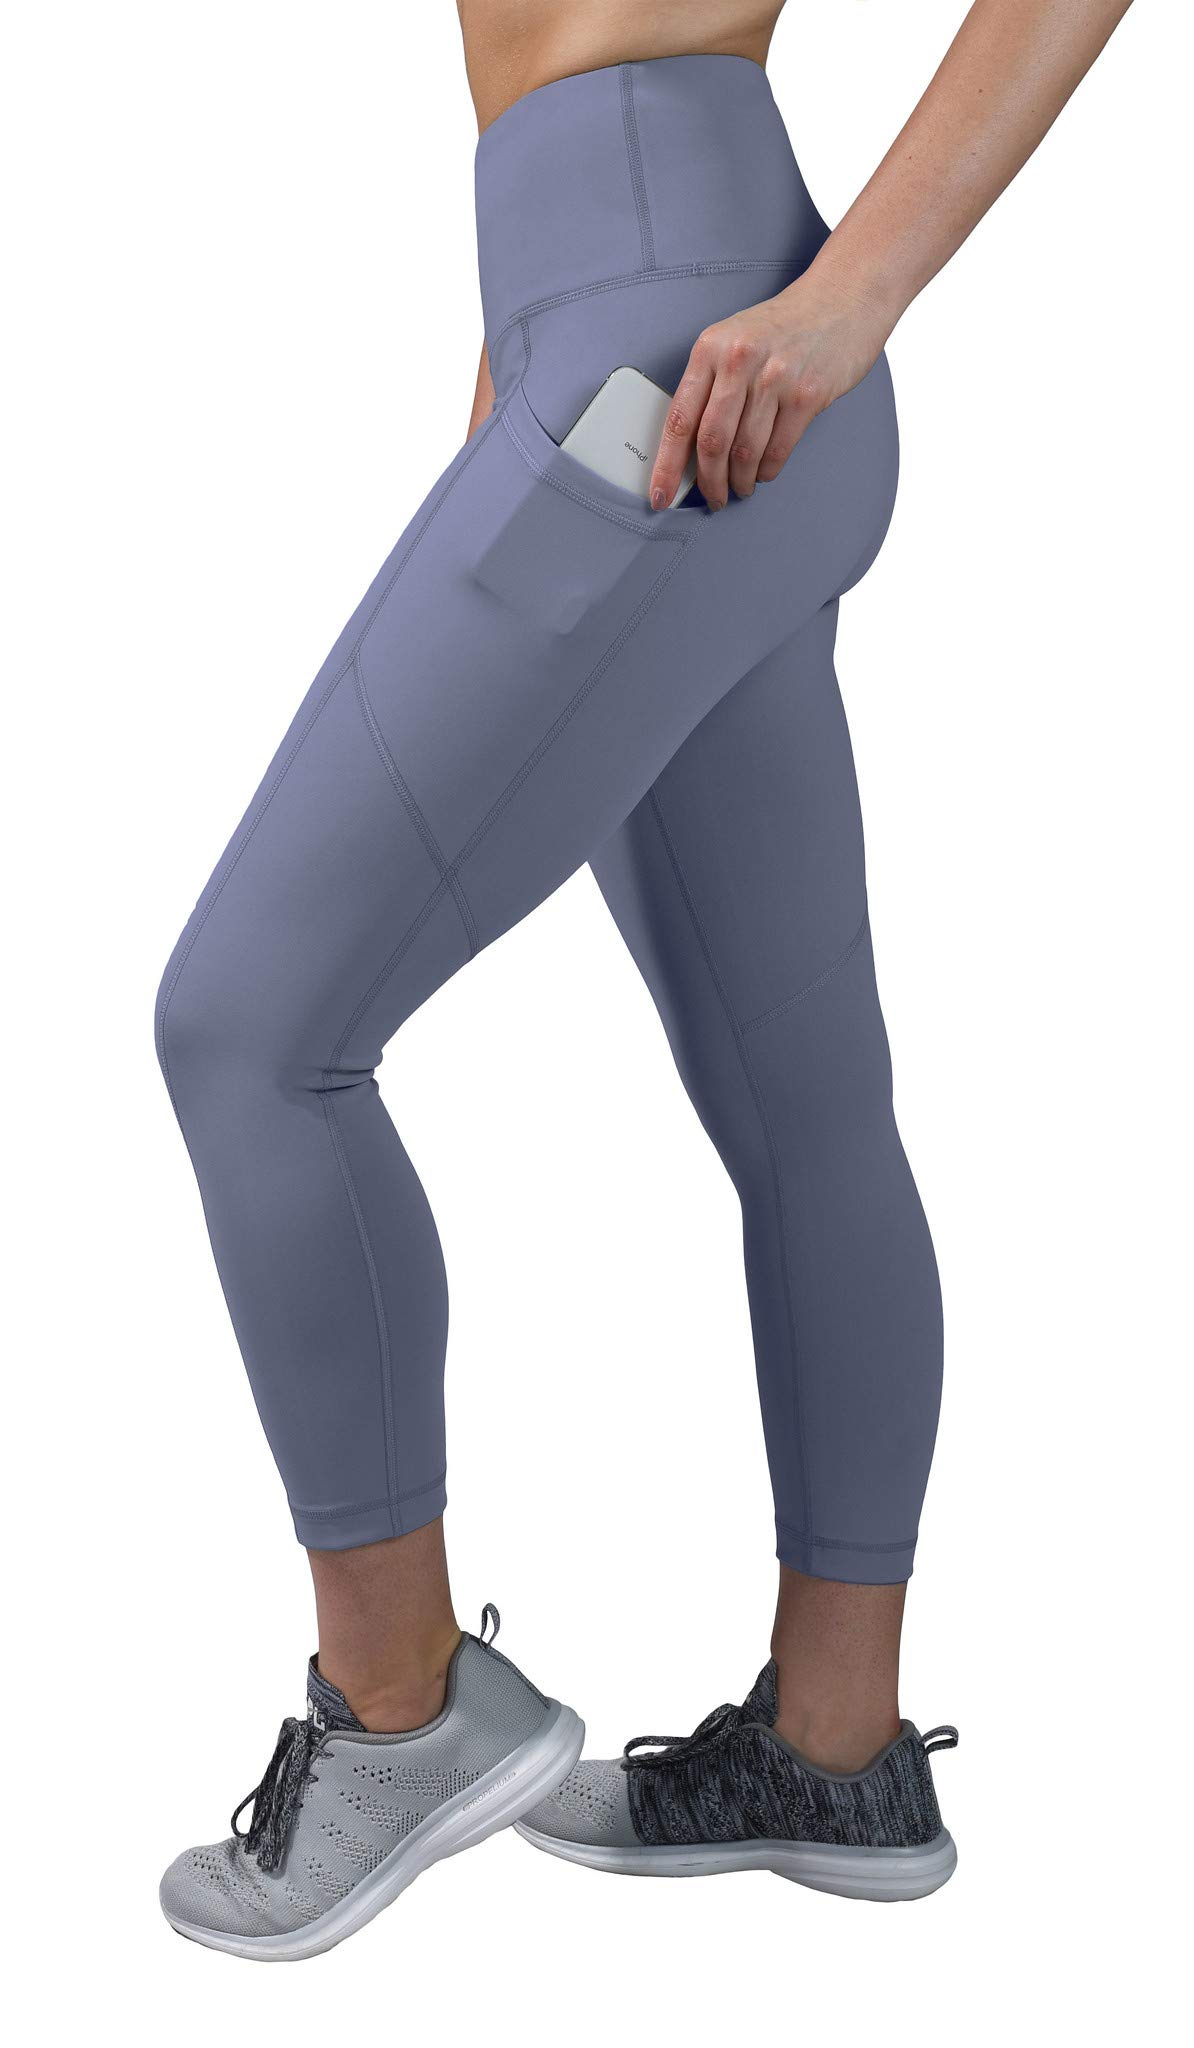 90 Degree By Reflex High Waist Squat Proof Yoga Capri Leggings with Side Phone Pockets - Blue Moon - XS by 90 Degree By Reflex